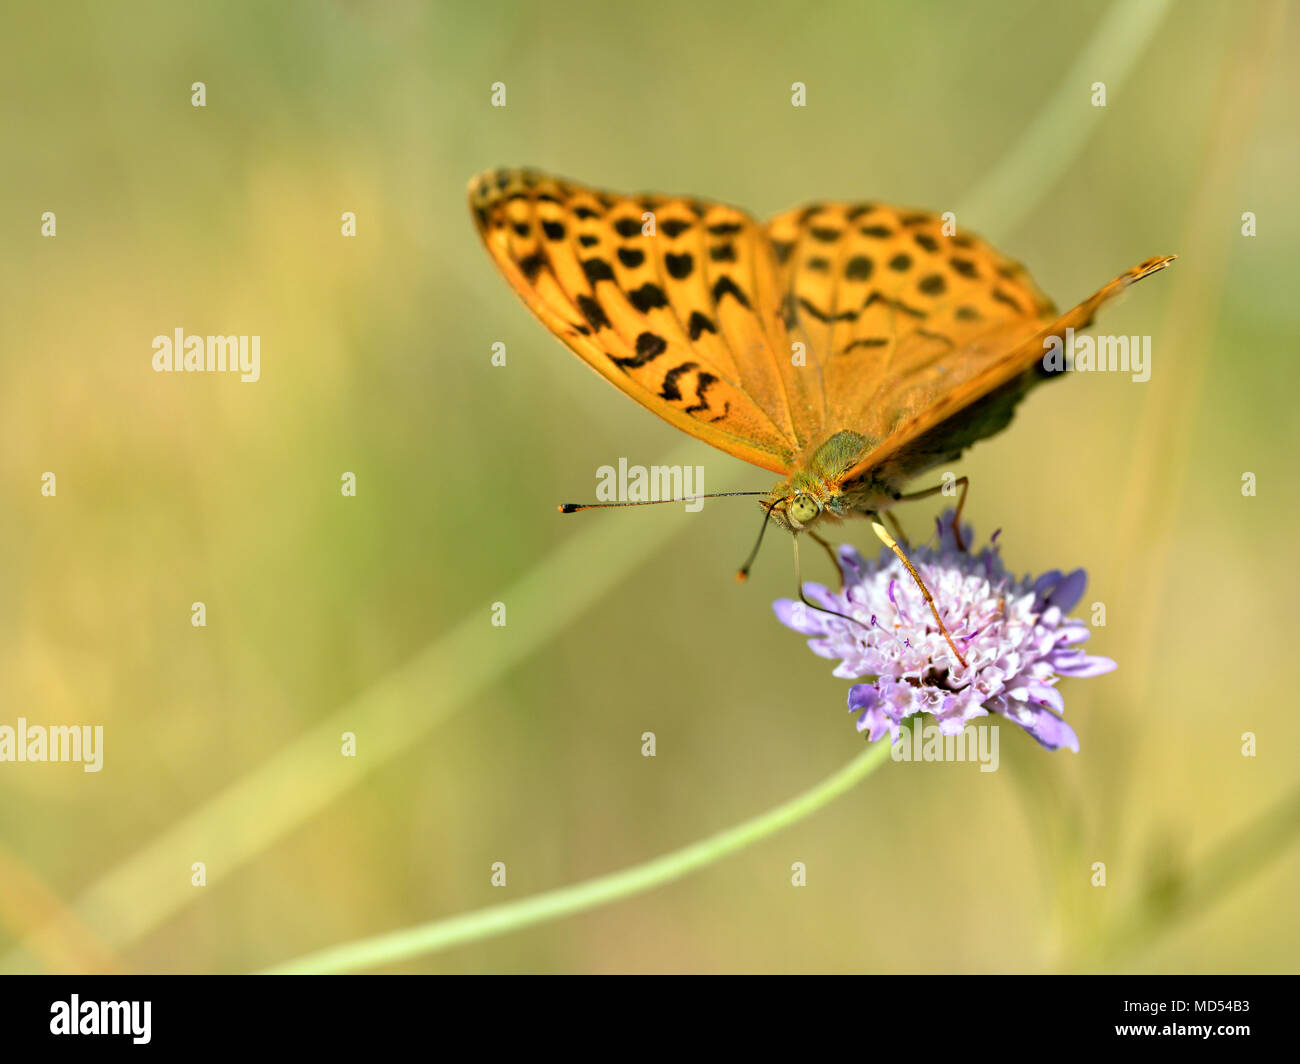 Silver-washed Fritillary butterfly (Argynnis paphia) feeding on scabiosa flower - Stock Image